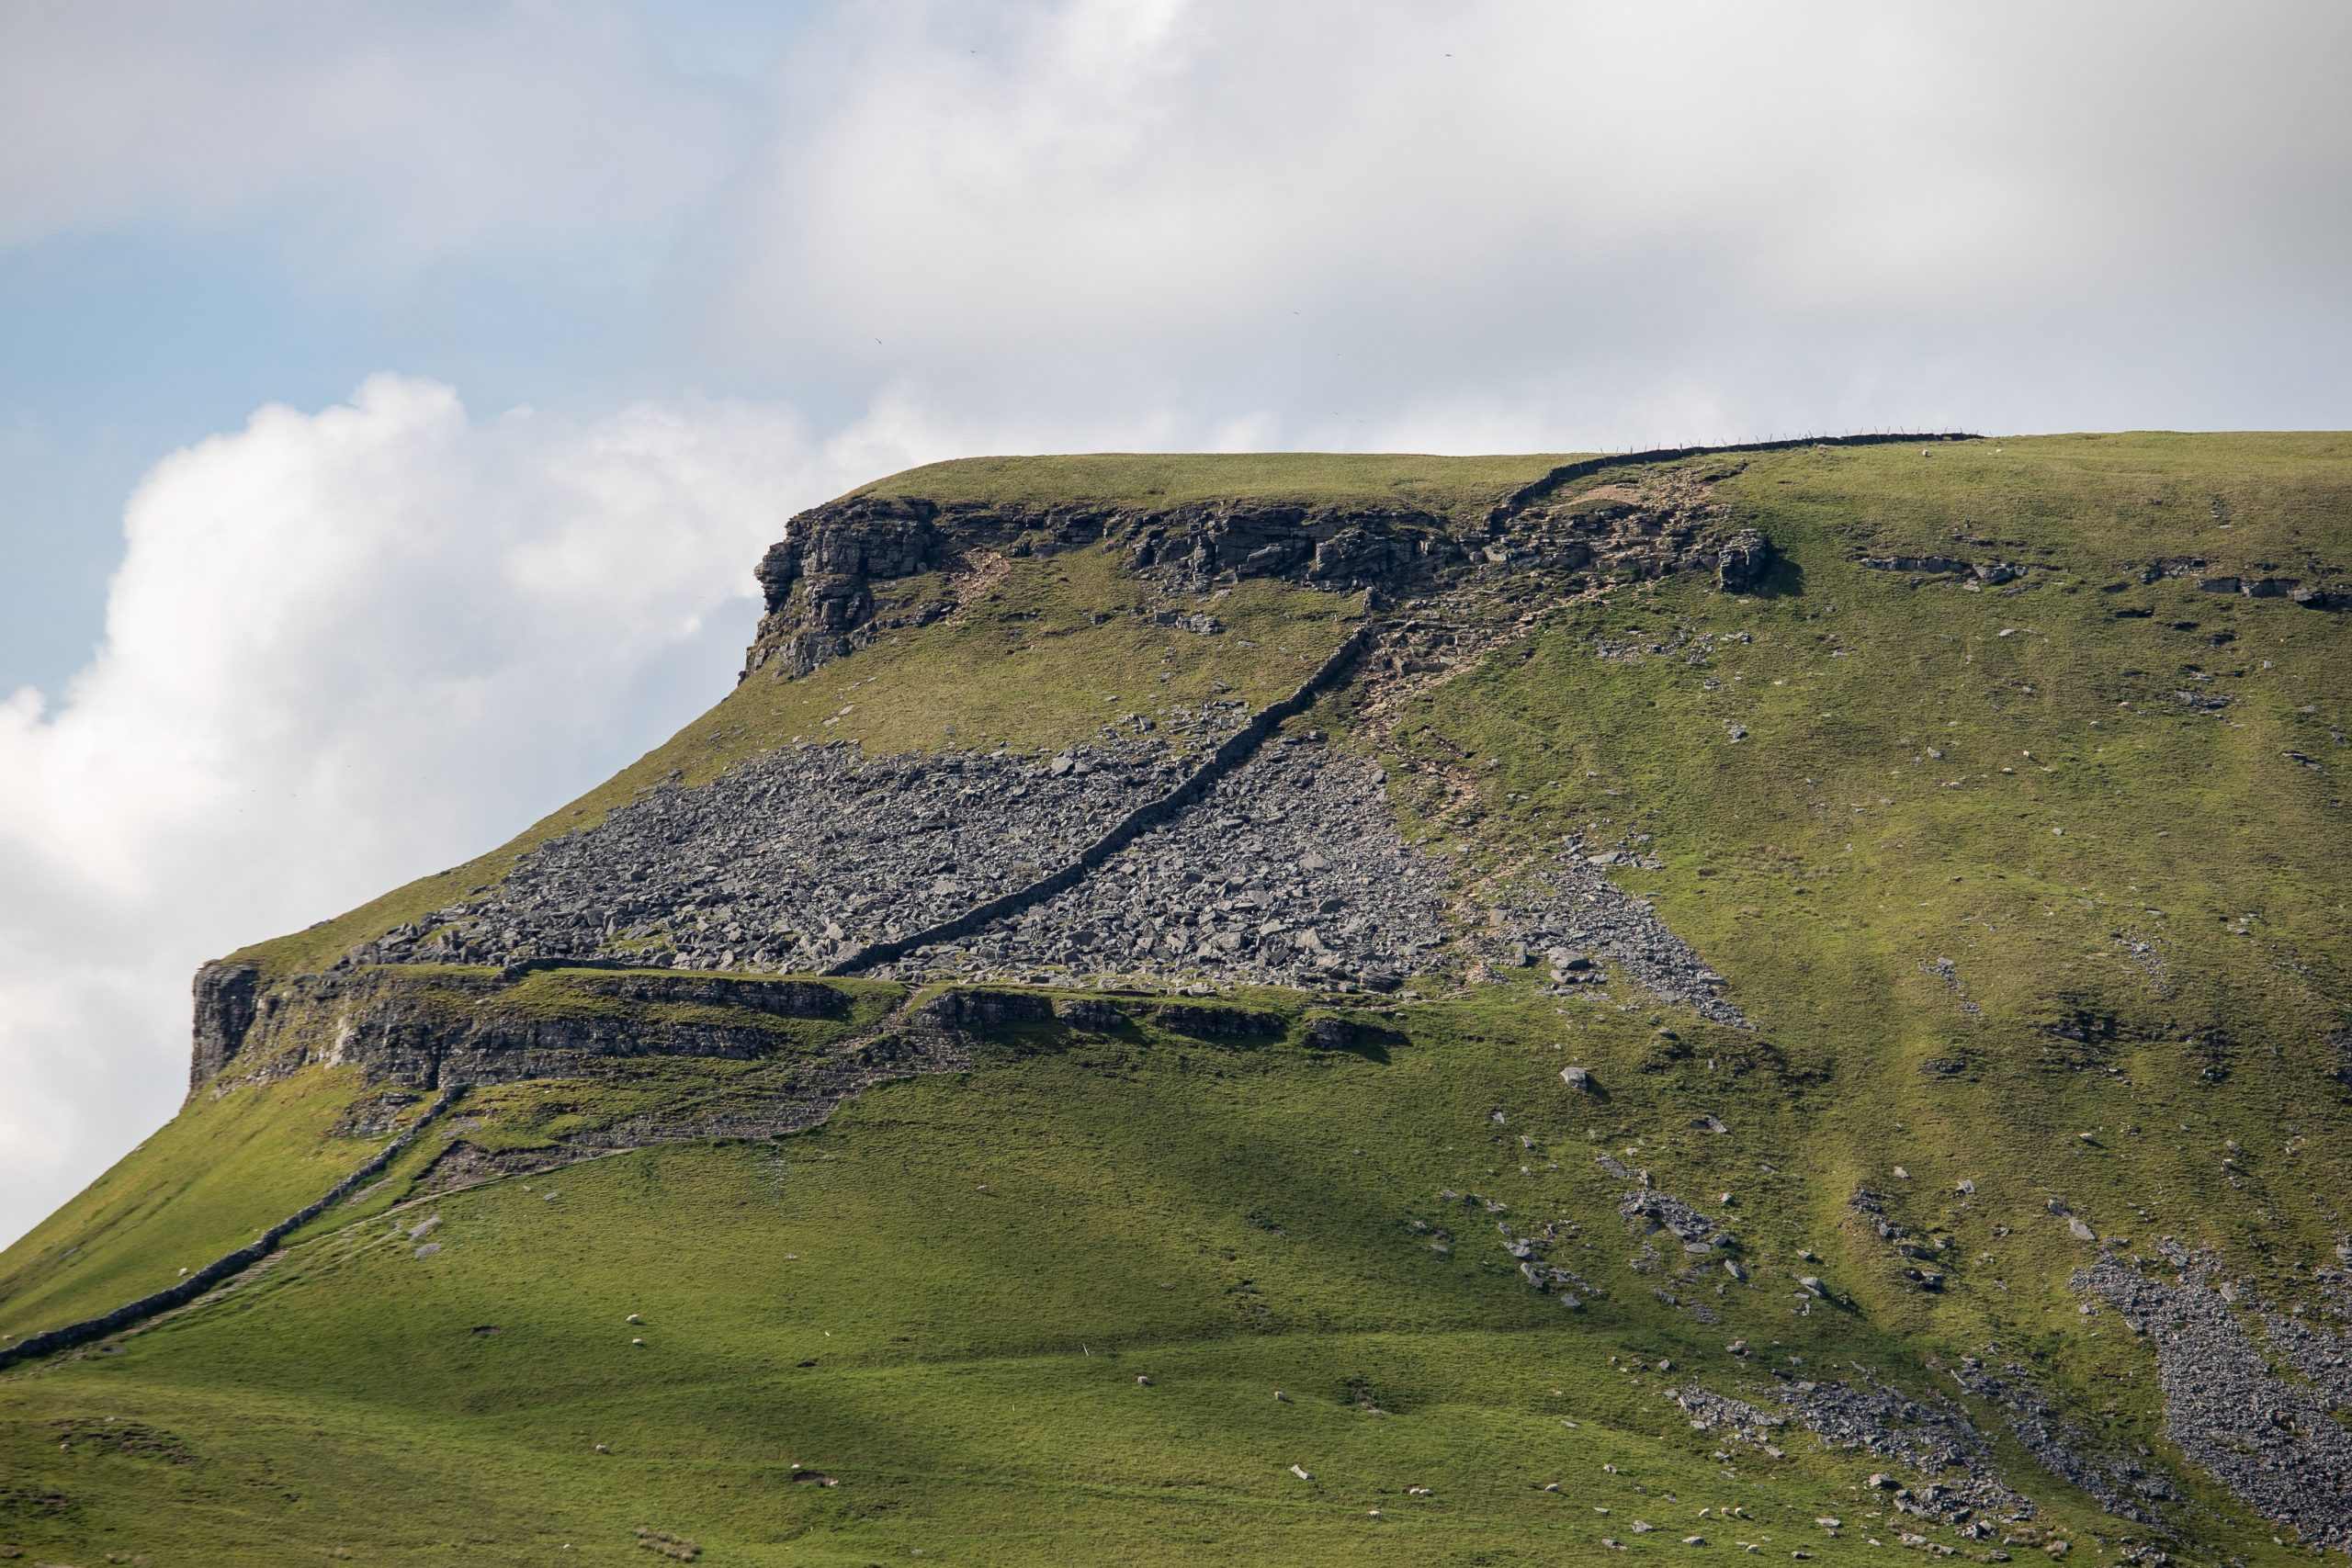 A close up of the steep rocky scramble section on the final approach to the summit of Pen y Ghent in the Yorkshire Dales